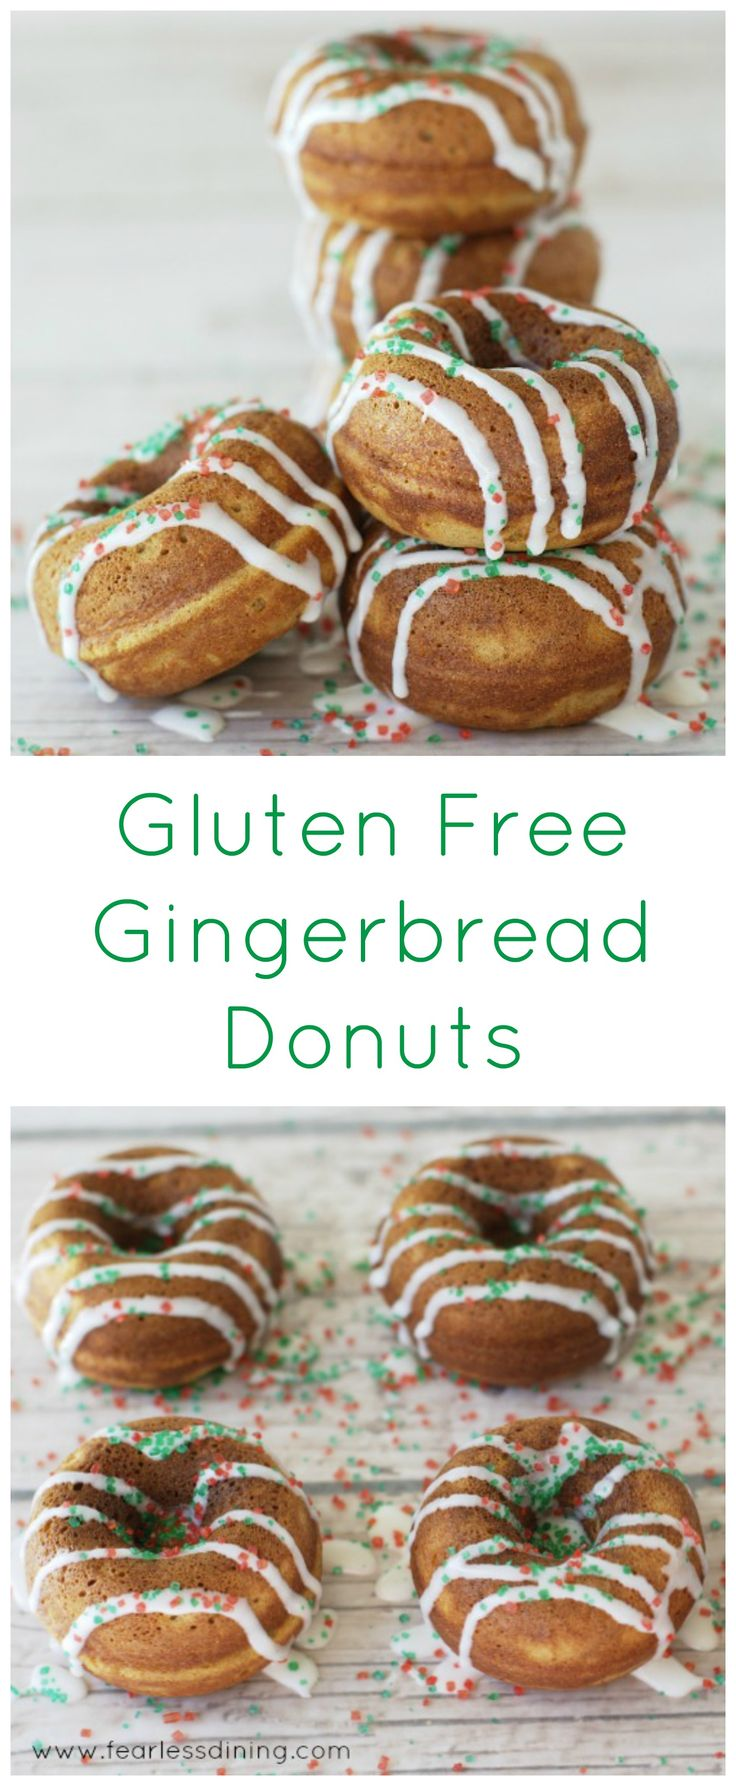 Gluten Free Gingerbread Donuts are tiny bites of yum. http://www.fearlessdining